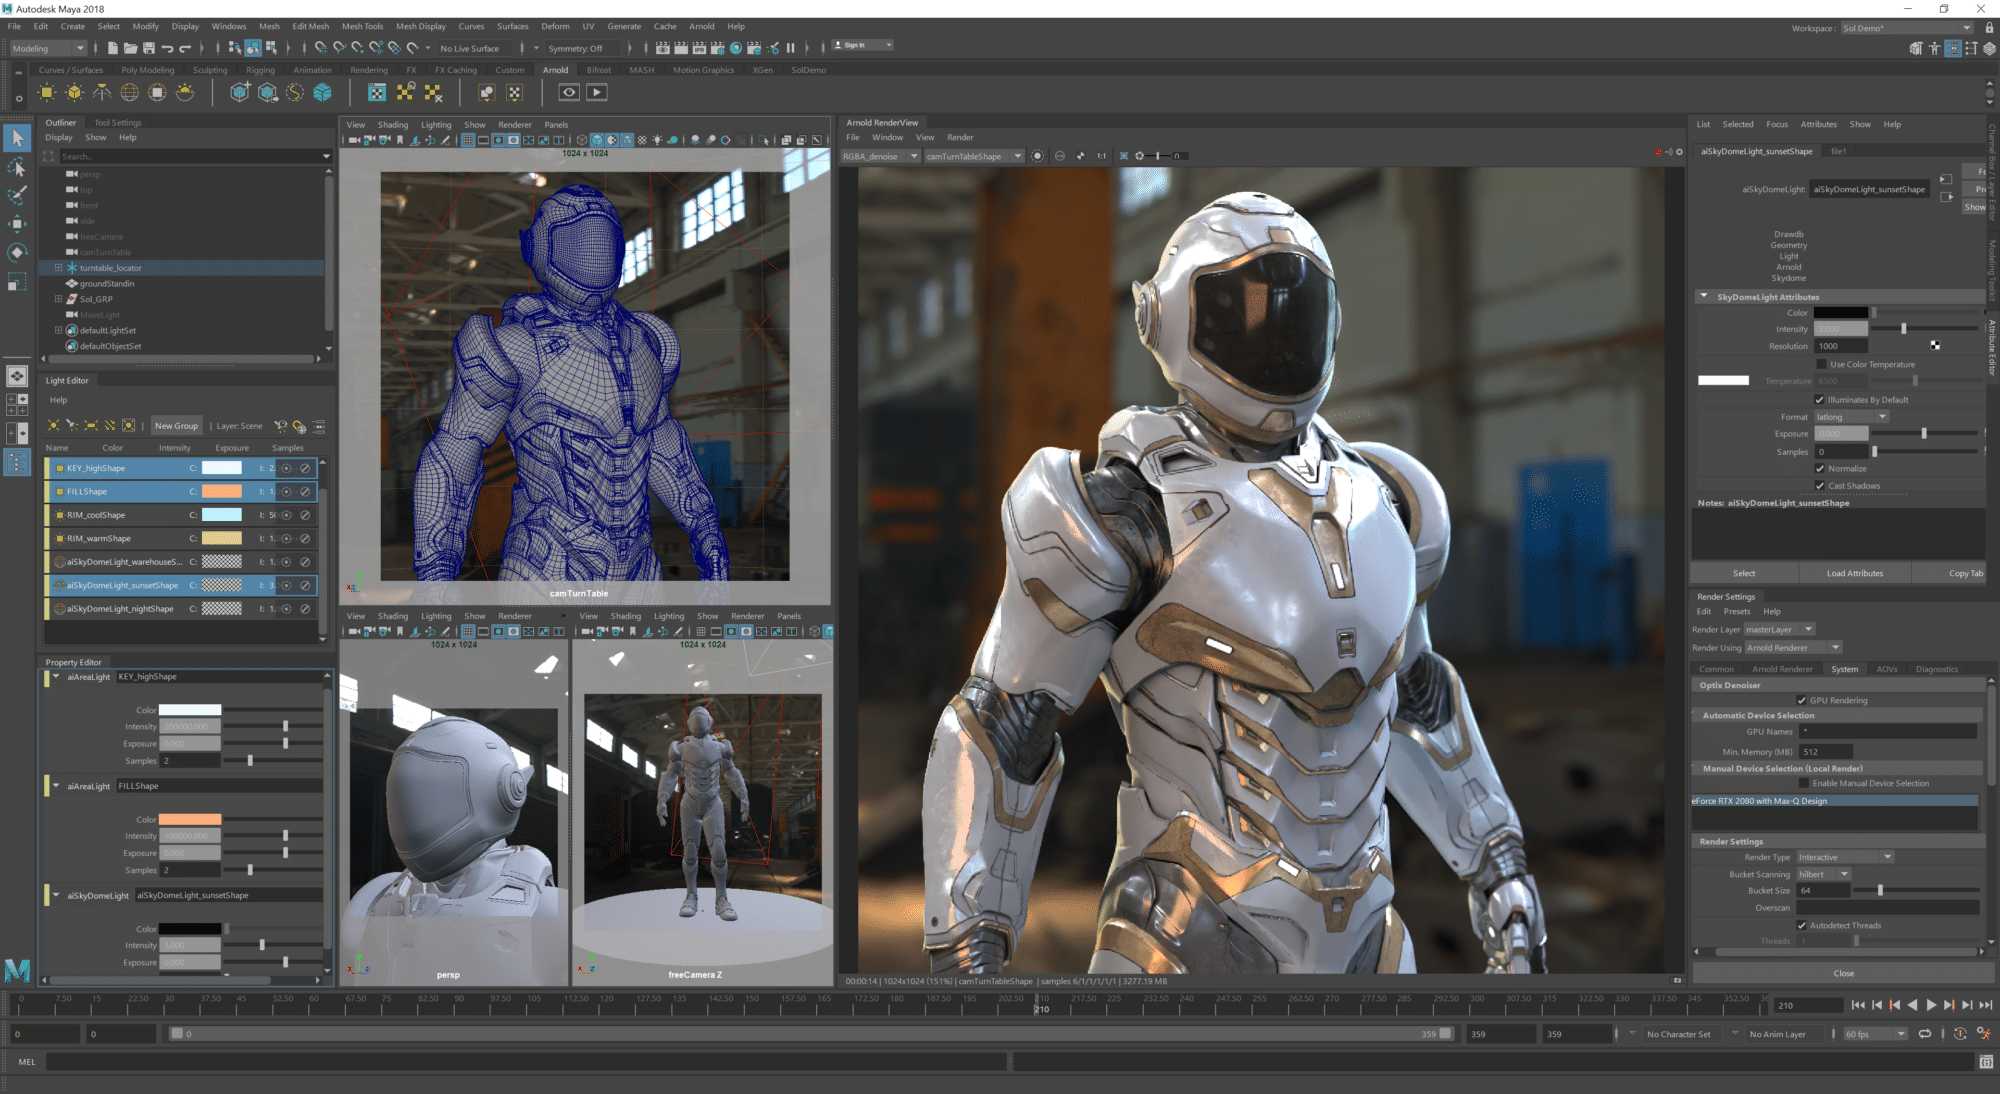 NVIDIA Teams with Autodesk, RED to Bring 3D Animation, 6K Video